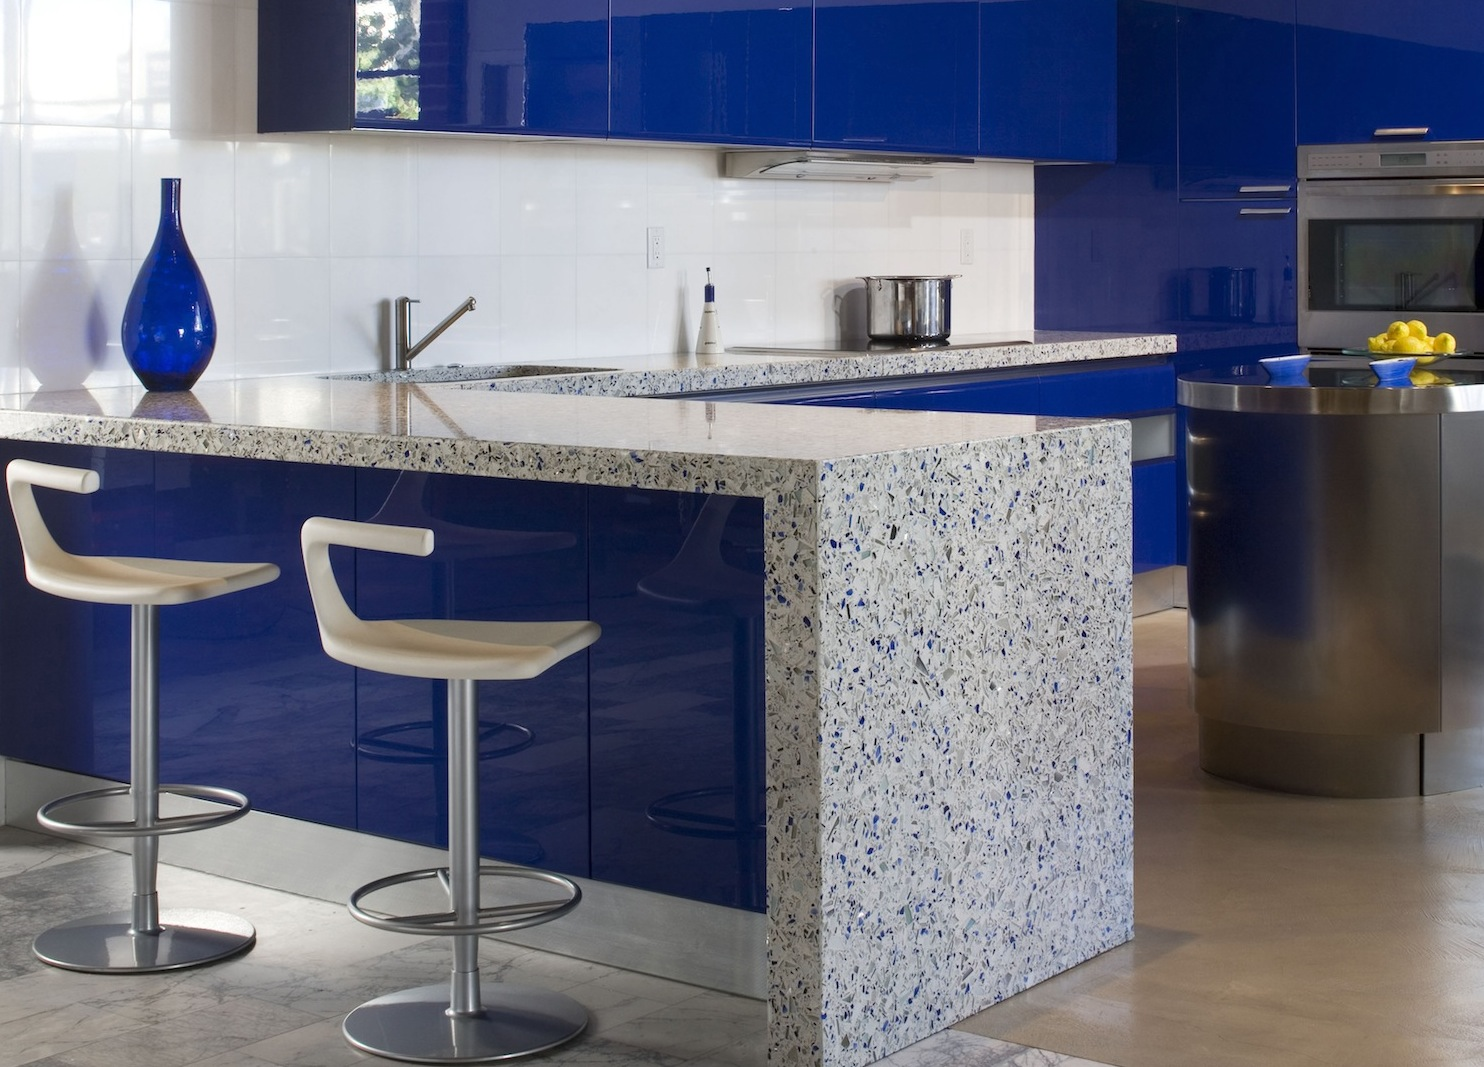 7 most popular types of kitchen countertops materials for Blue countertops kitchen ideas